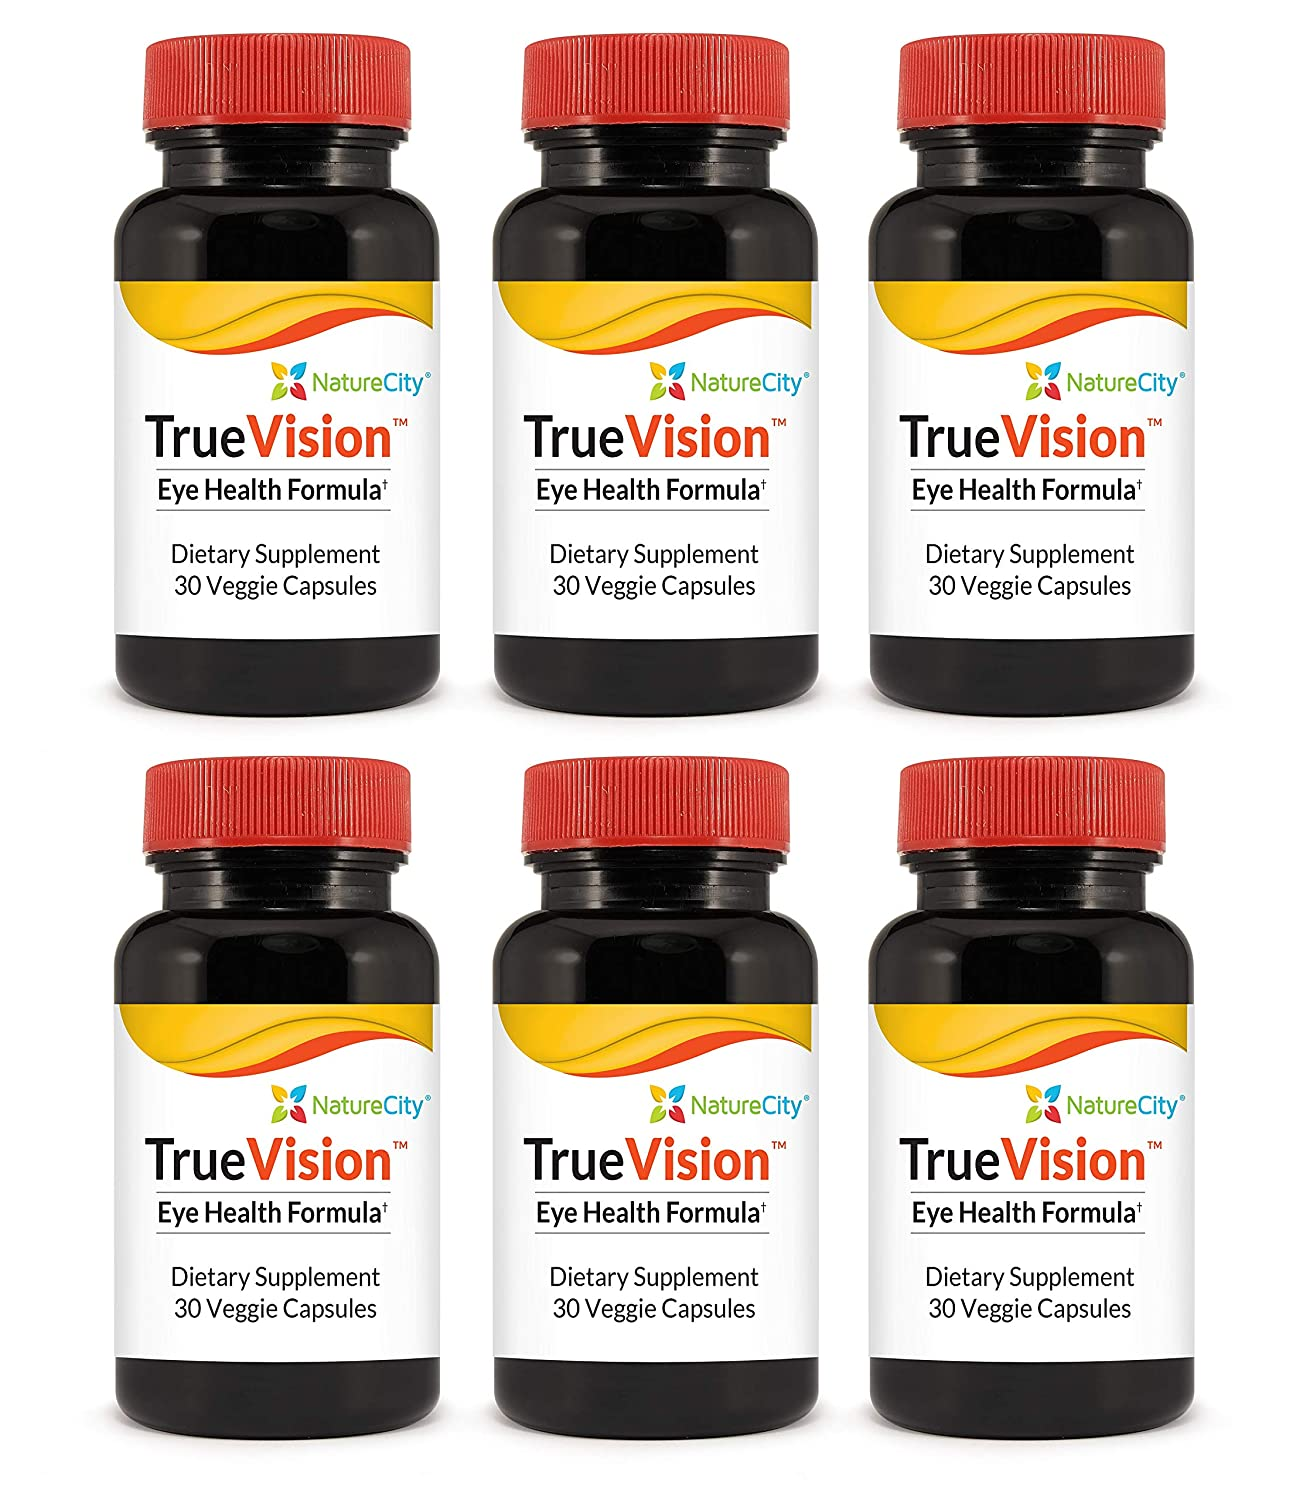 Truevision Vision Support Supplement Lutein Puritan 293 Saw Palmetto Standardized Extract 320 Mg 60 Softgels Zeaxanthin Saffron 30 Veggie Capsules Single Bottle Health Personal Care